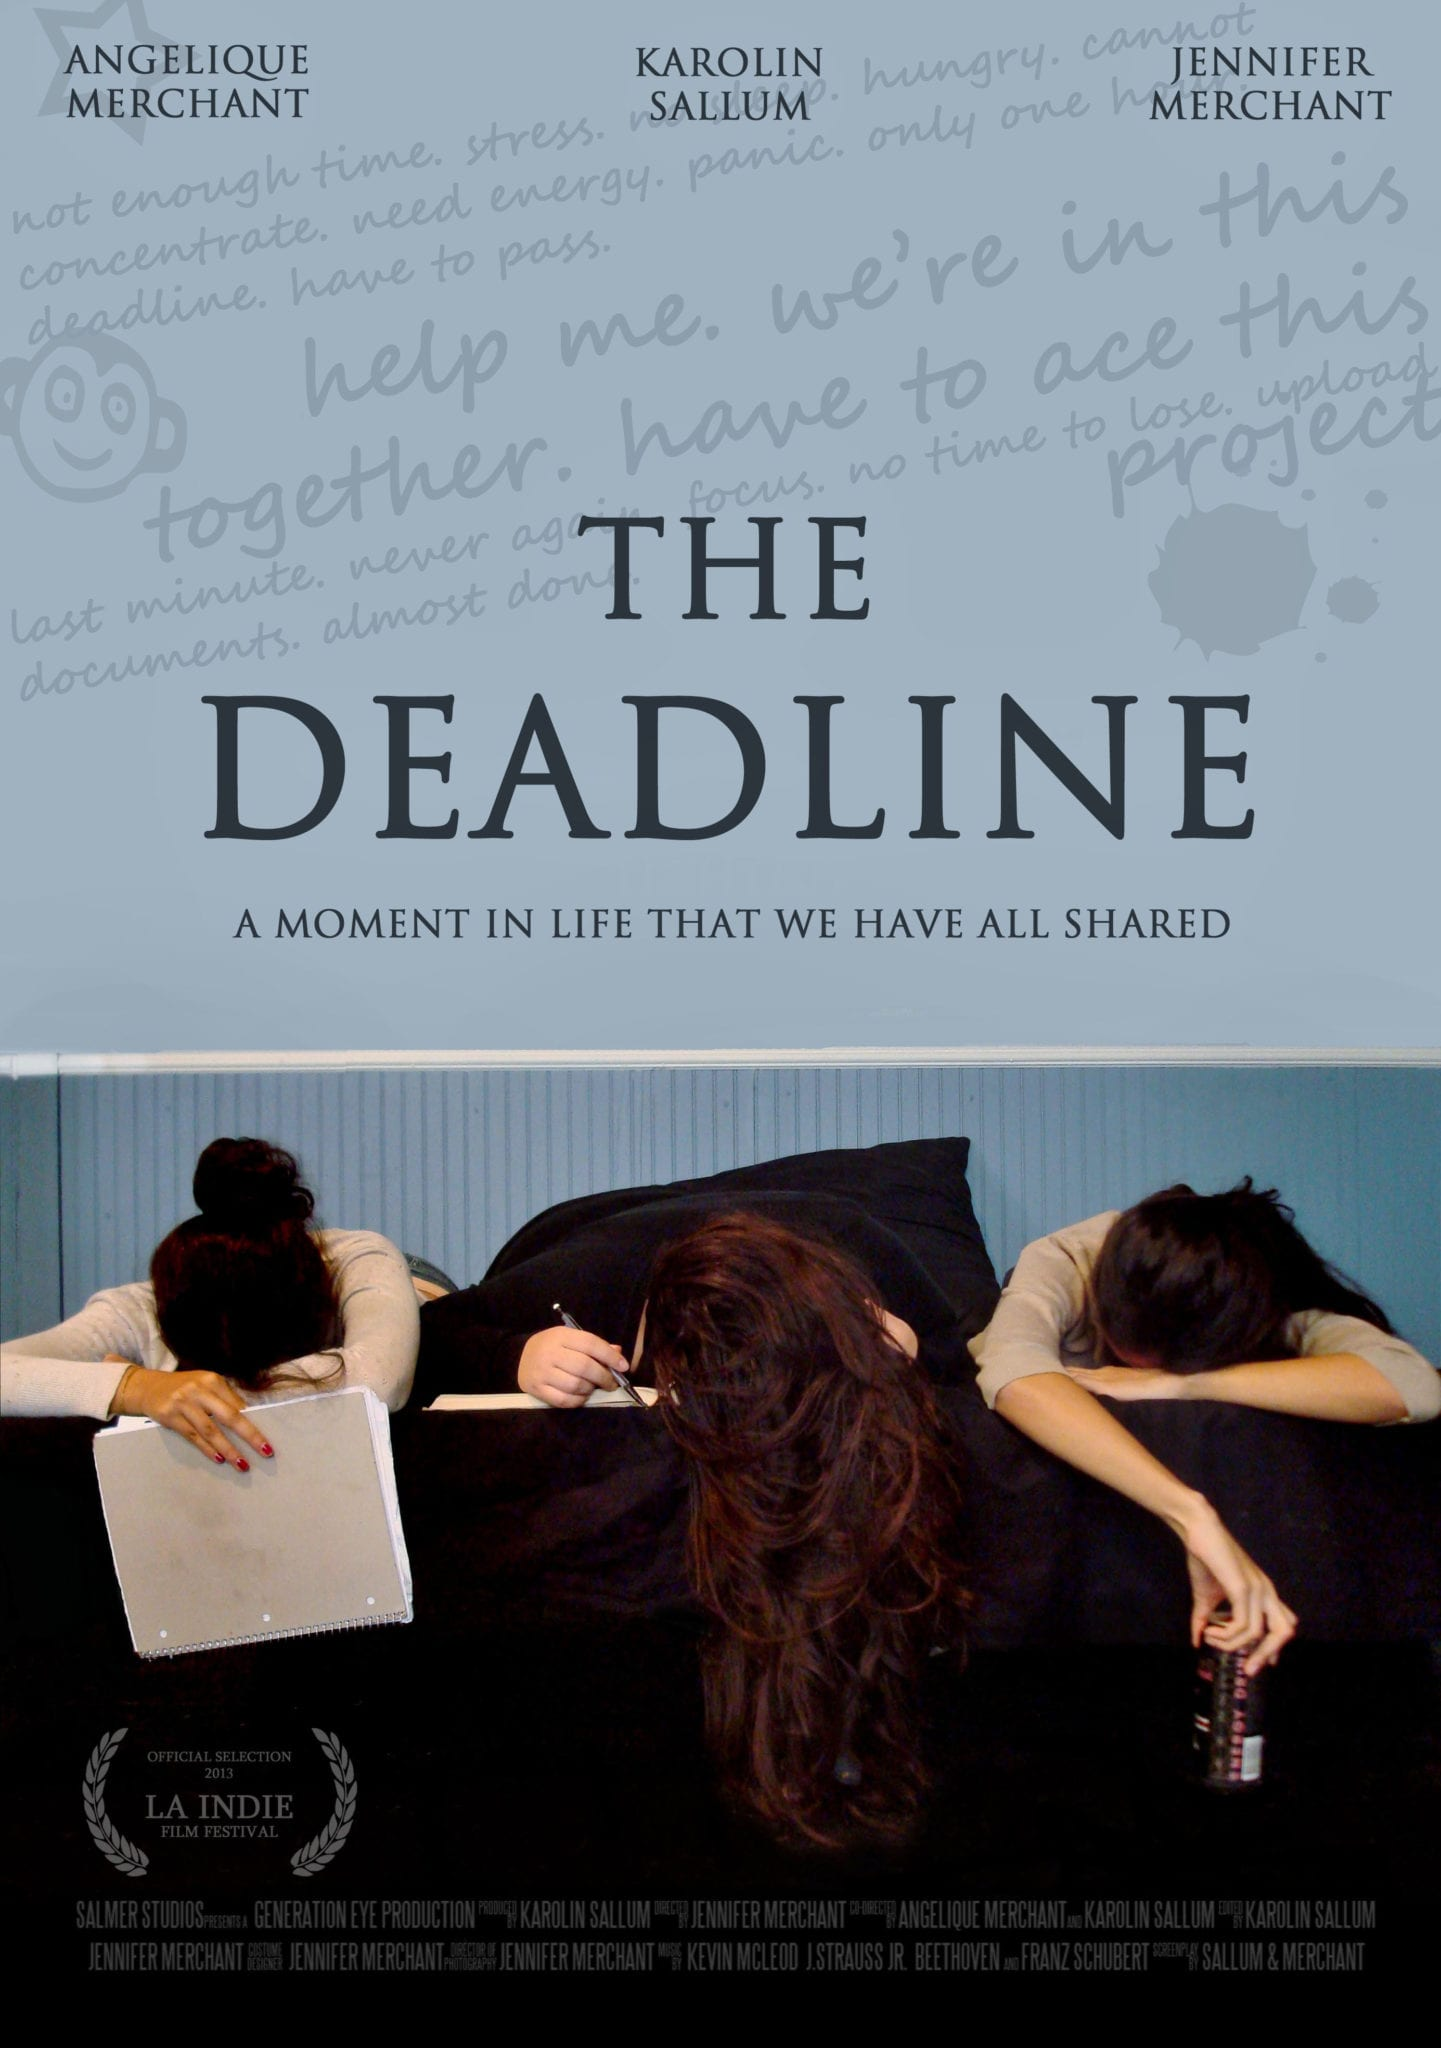 the_deadline_poster_2013_jennifer_merchant